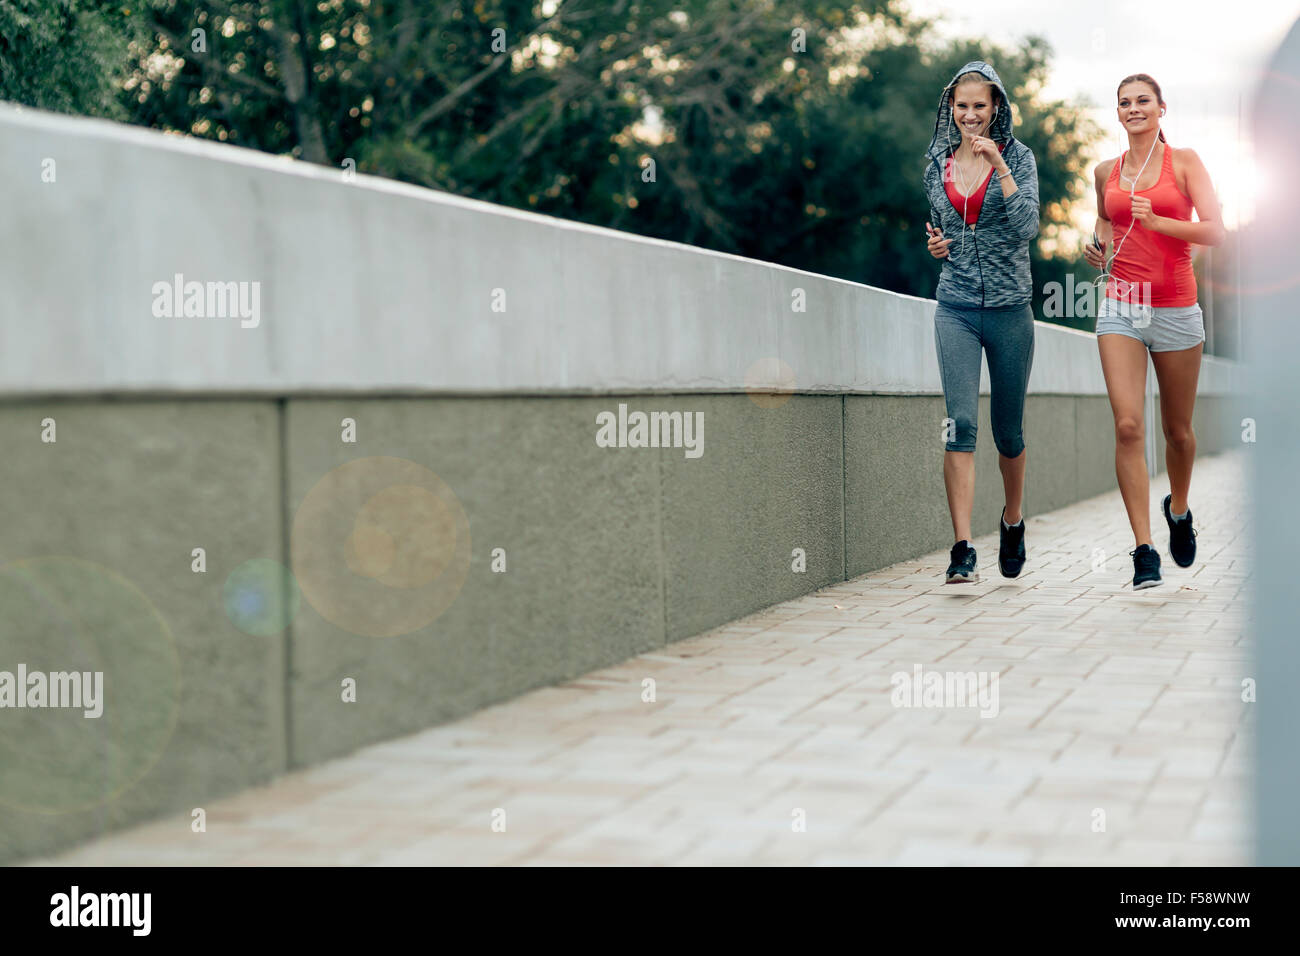 Active female joggers running outdoors and listening to music - Stock Image